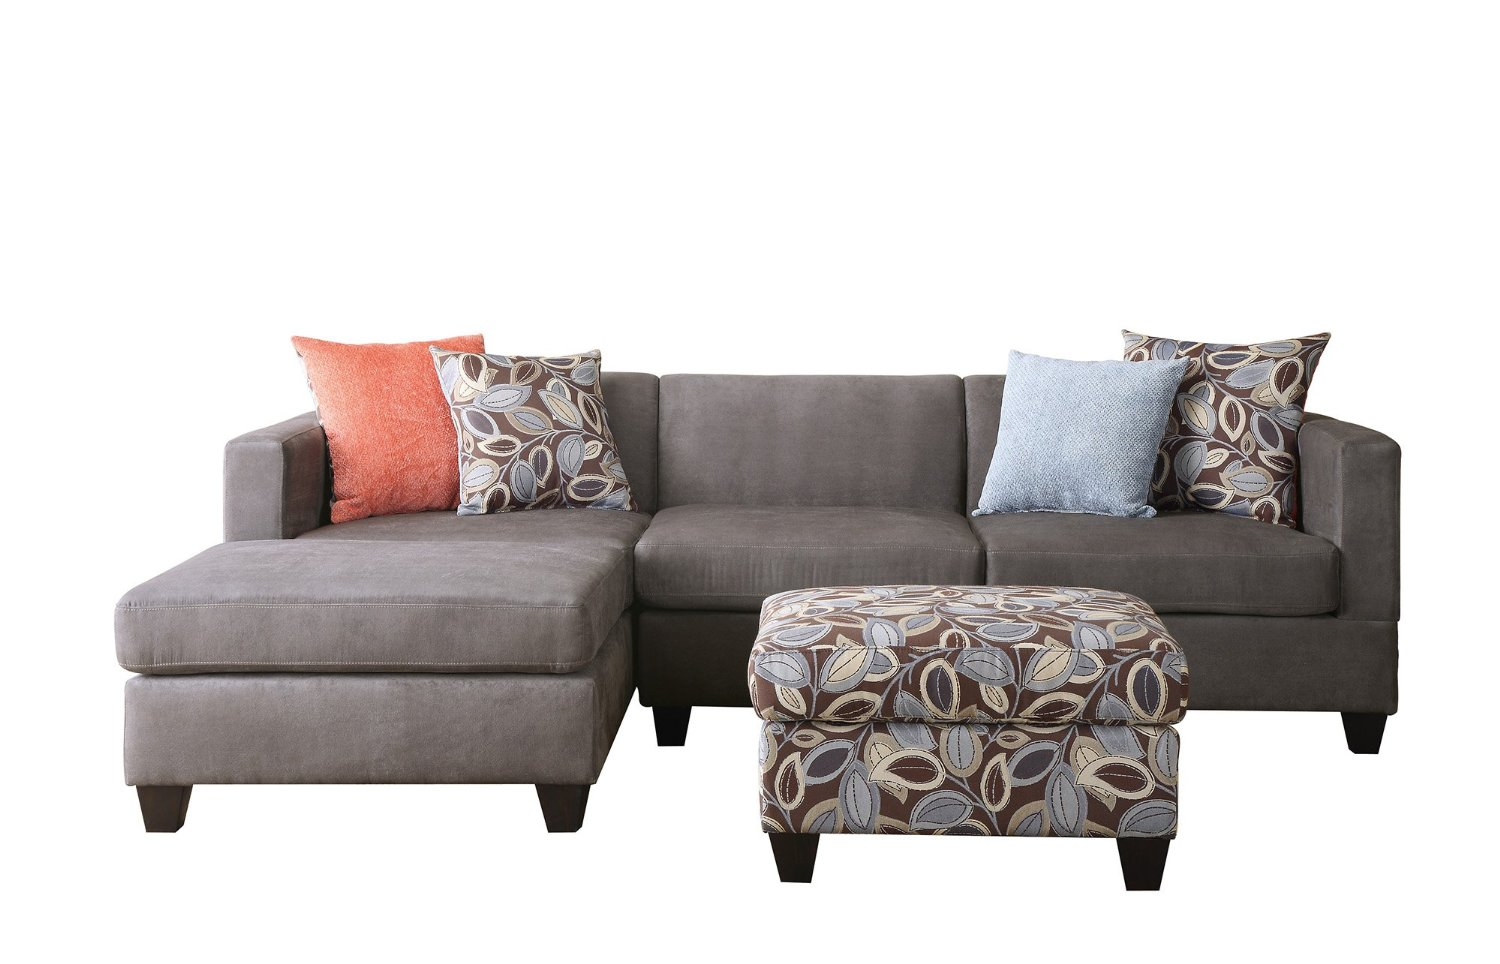 Types of best small sectional couches for small living for Throw pillows for sectional sofa